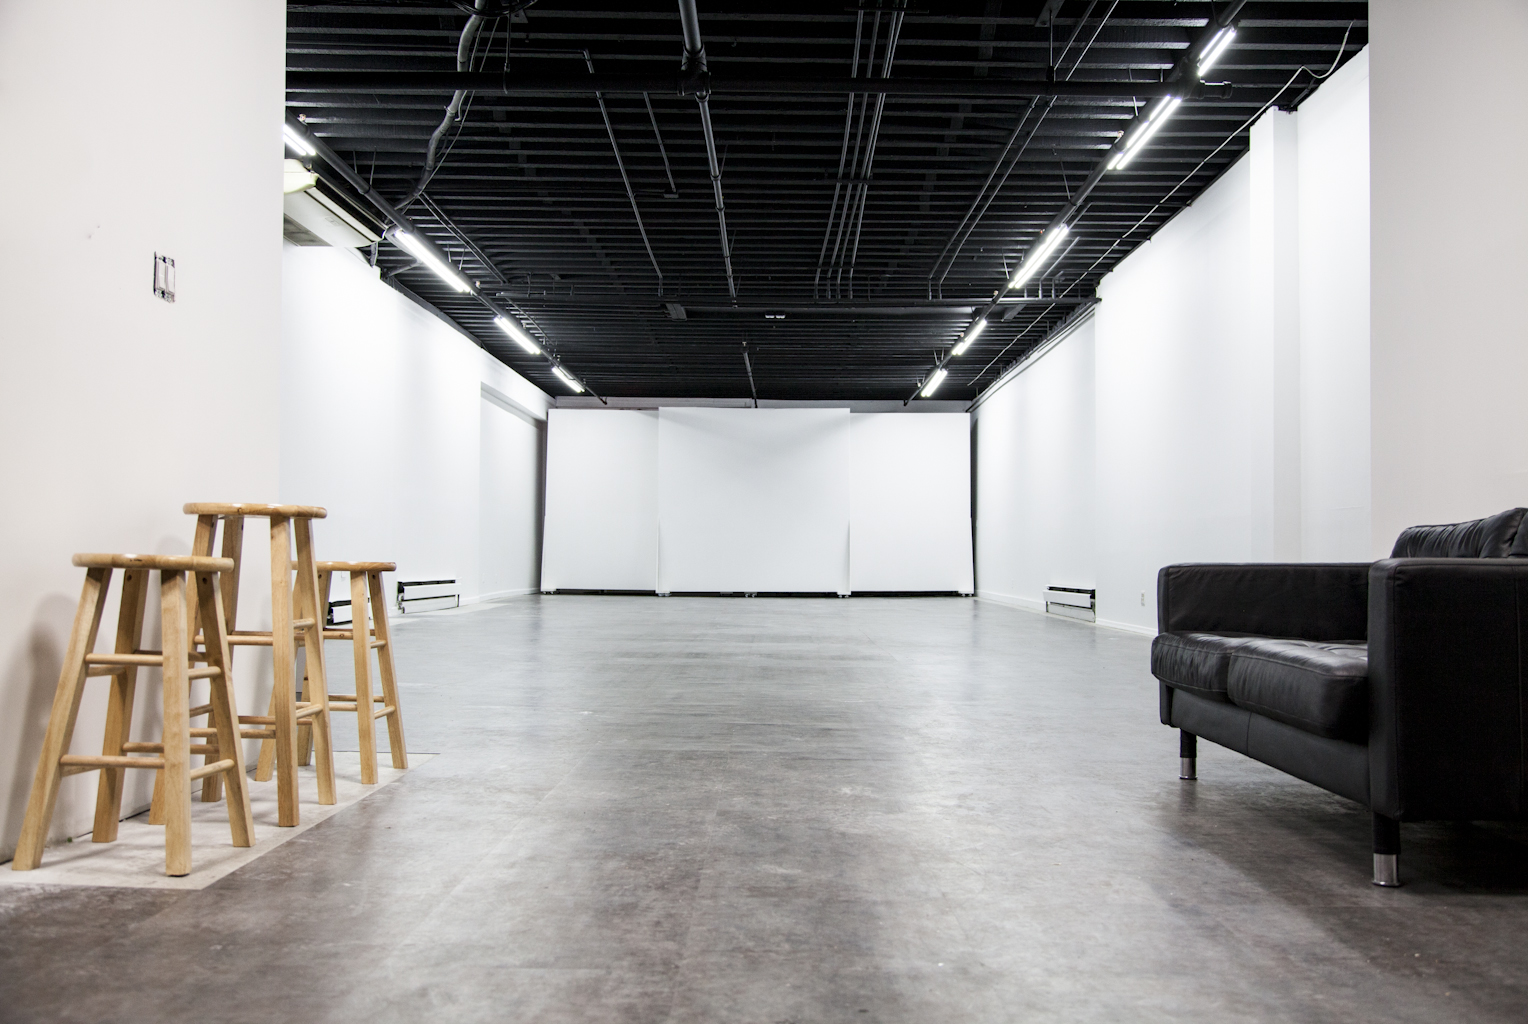 Space for Events and Production event space at Legendary Republic in New York City, NYC, NY/NJ Area